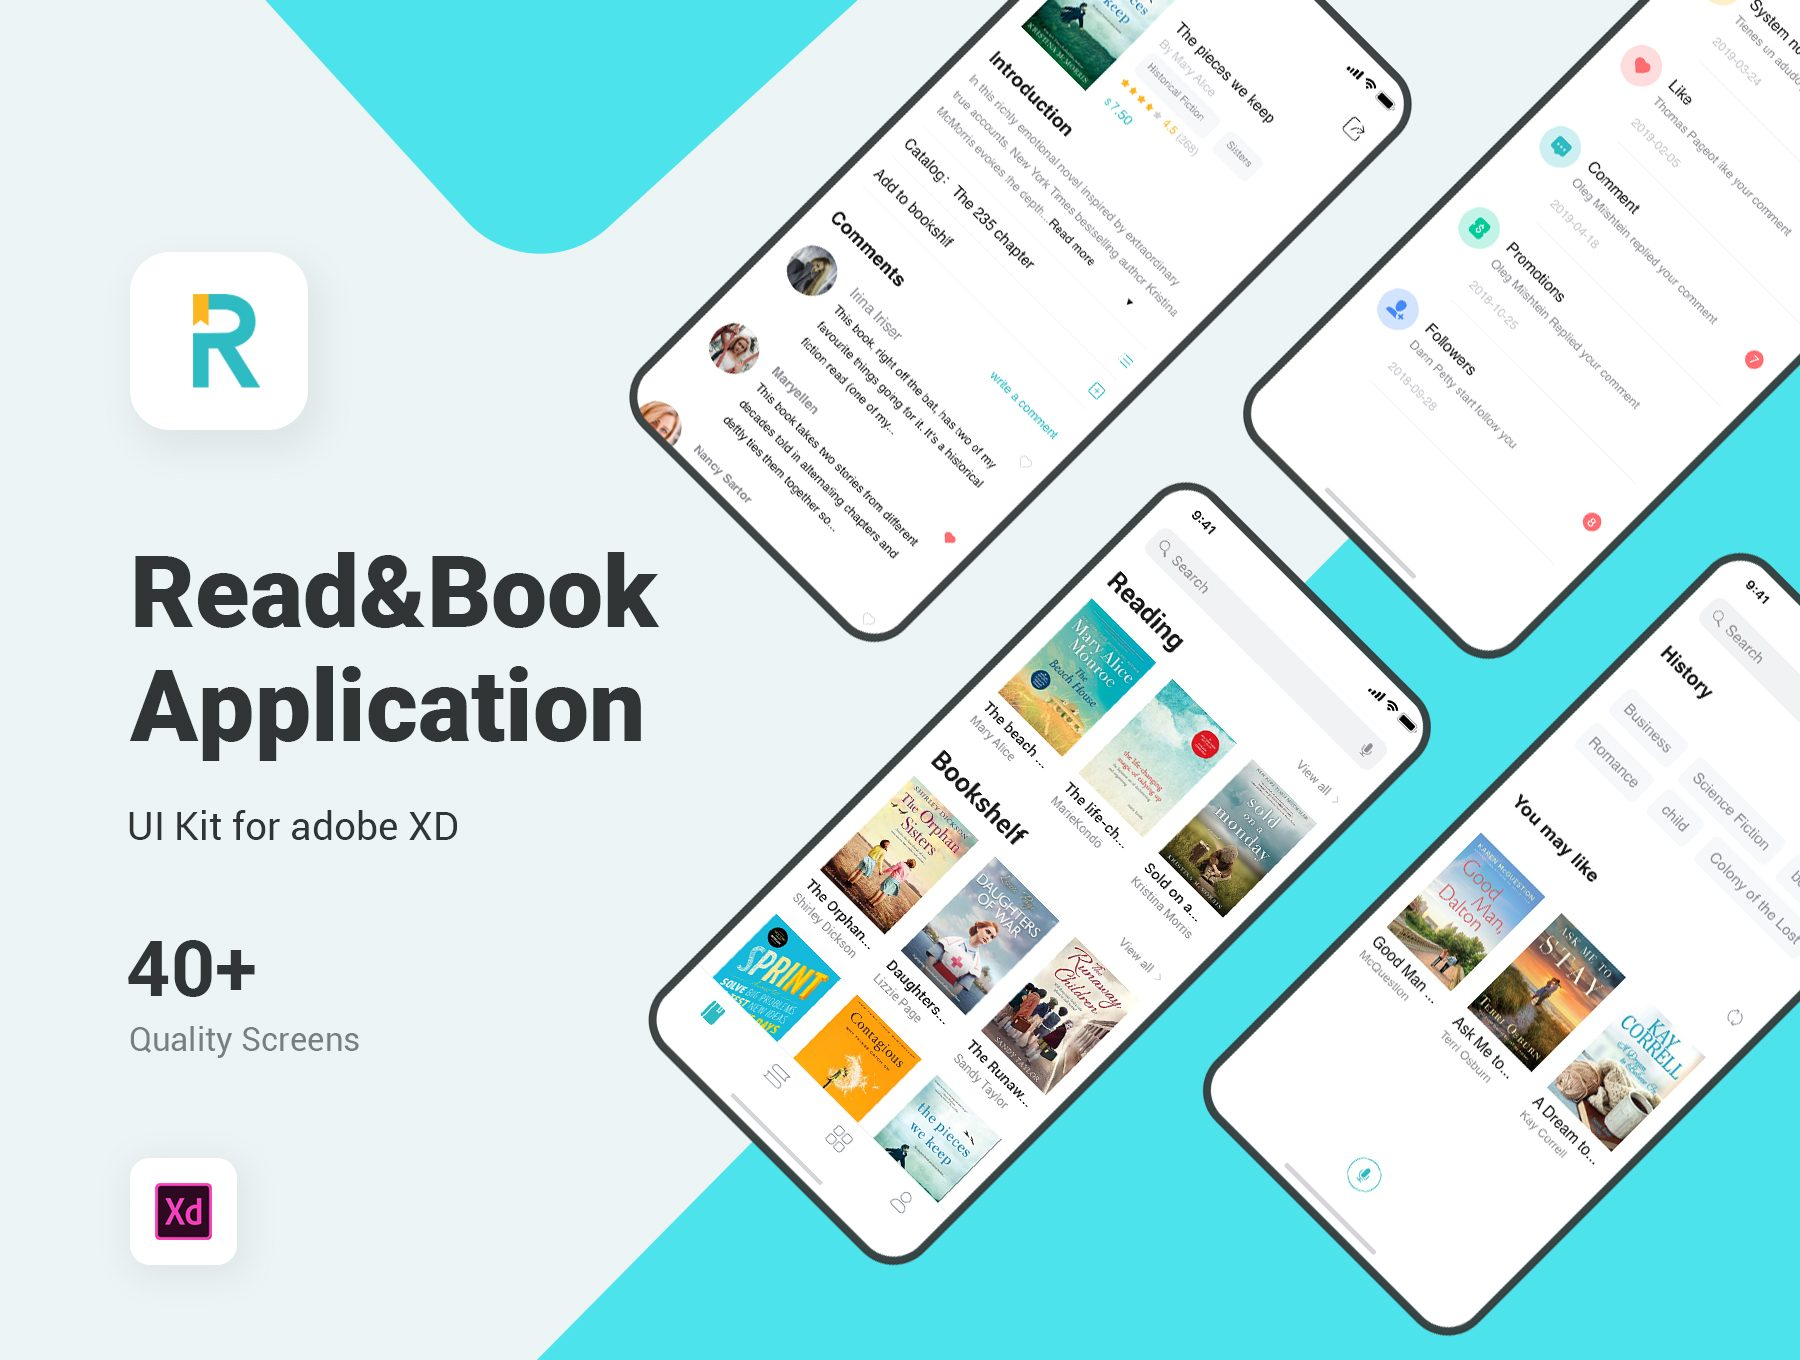 阅读类工具APP UI KIT套装 iOS Ui ui设计app [XD] Read & Book UI Kit for Adobe XD